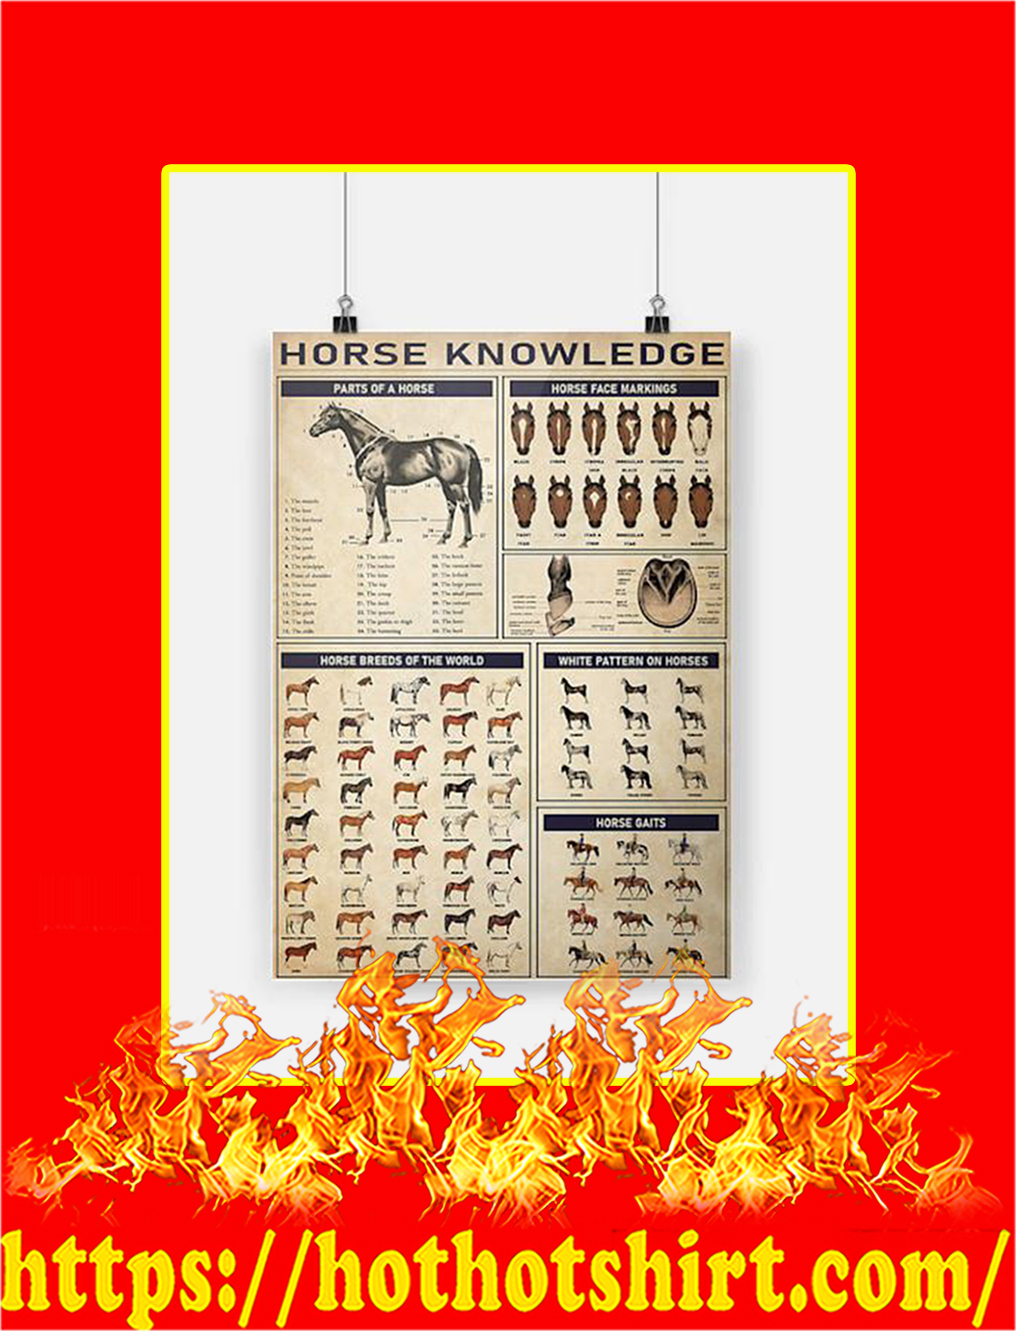 Horse knowledge Poster - A4